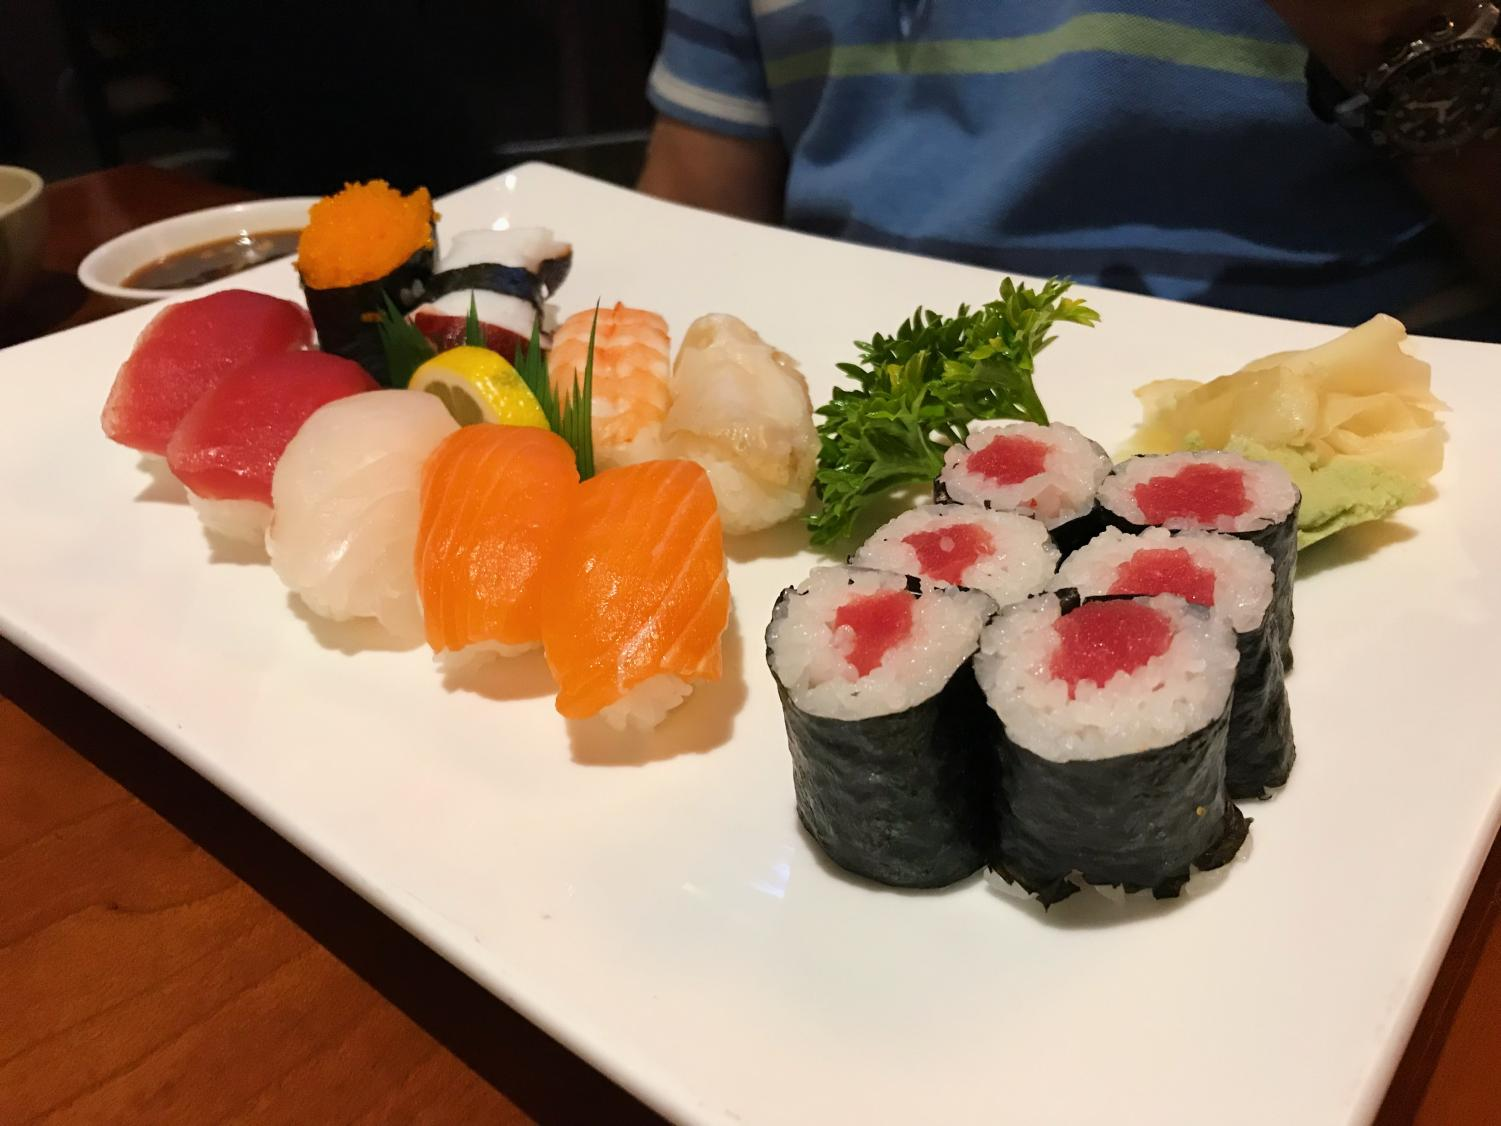 The sushi at Izakaya is always made with the freshest fish.